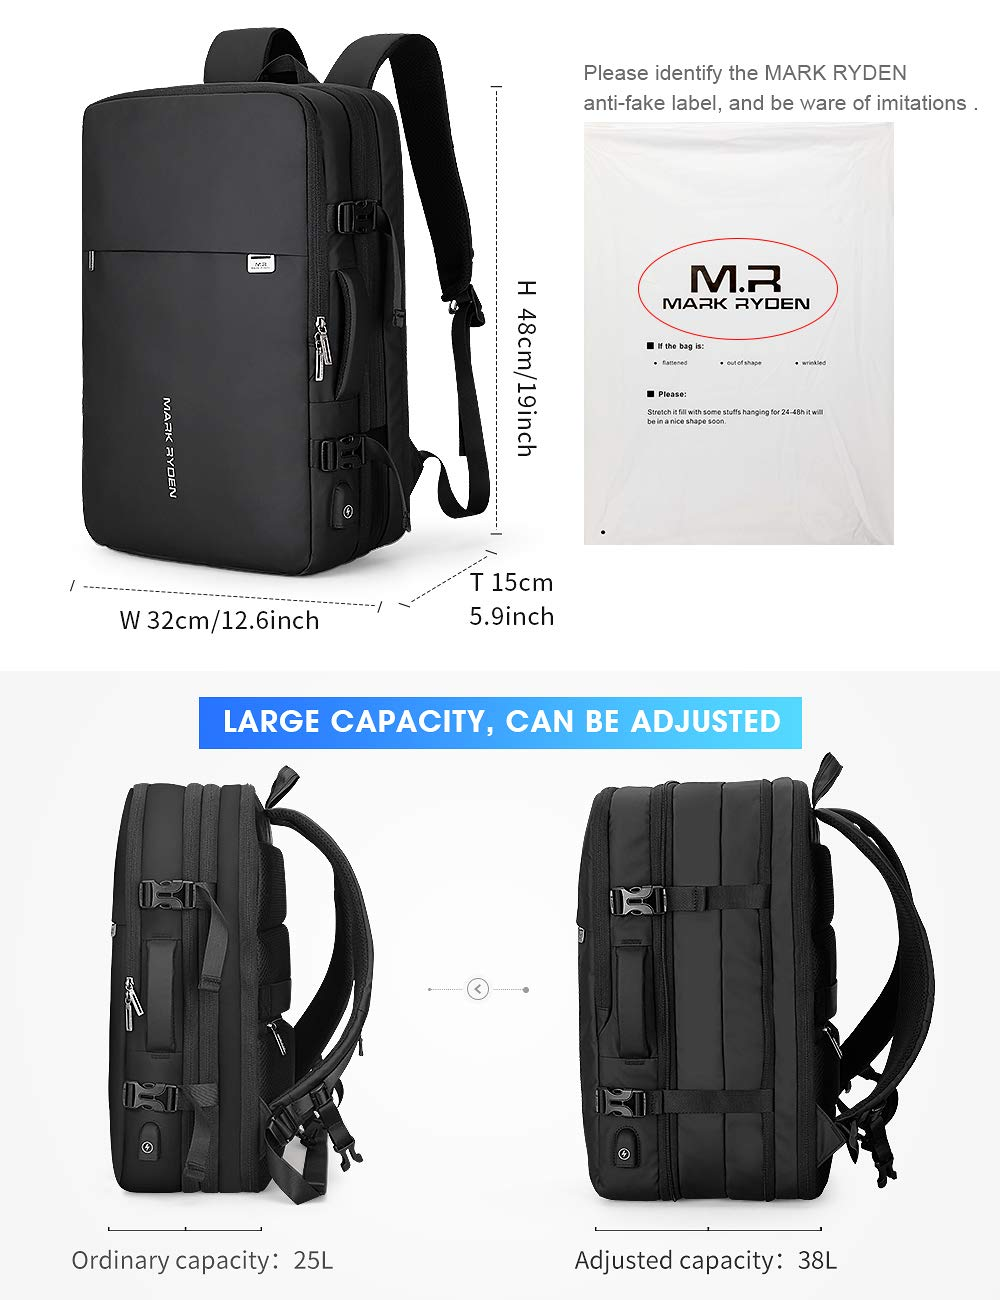 MARK RYDEN 23L/40L Business Carry-on Travel Backpack, Lightweight Flight-Approved Expandable Weekender Bag with USB Charging Port fit 17.3 Laptop by MARK RYDEN (Image #2)